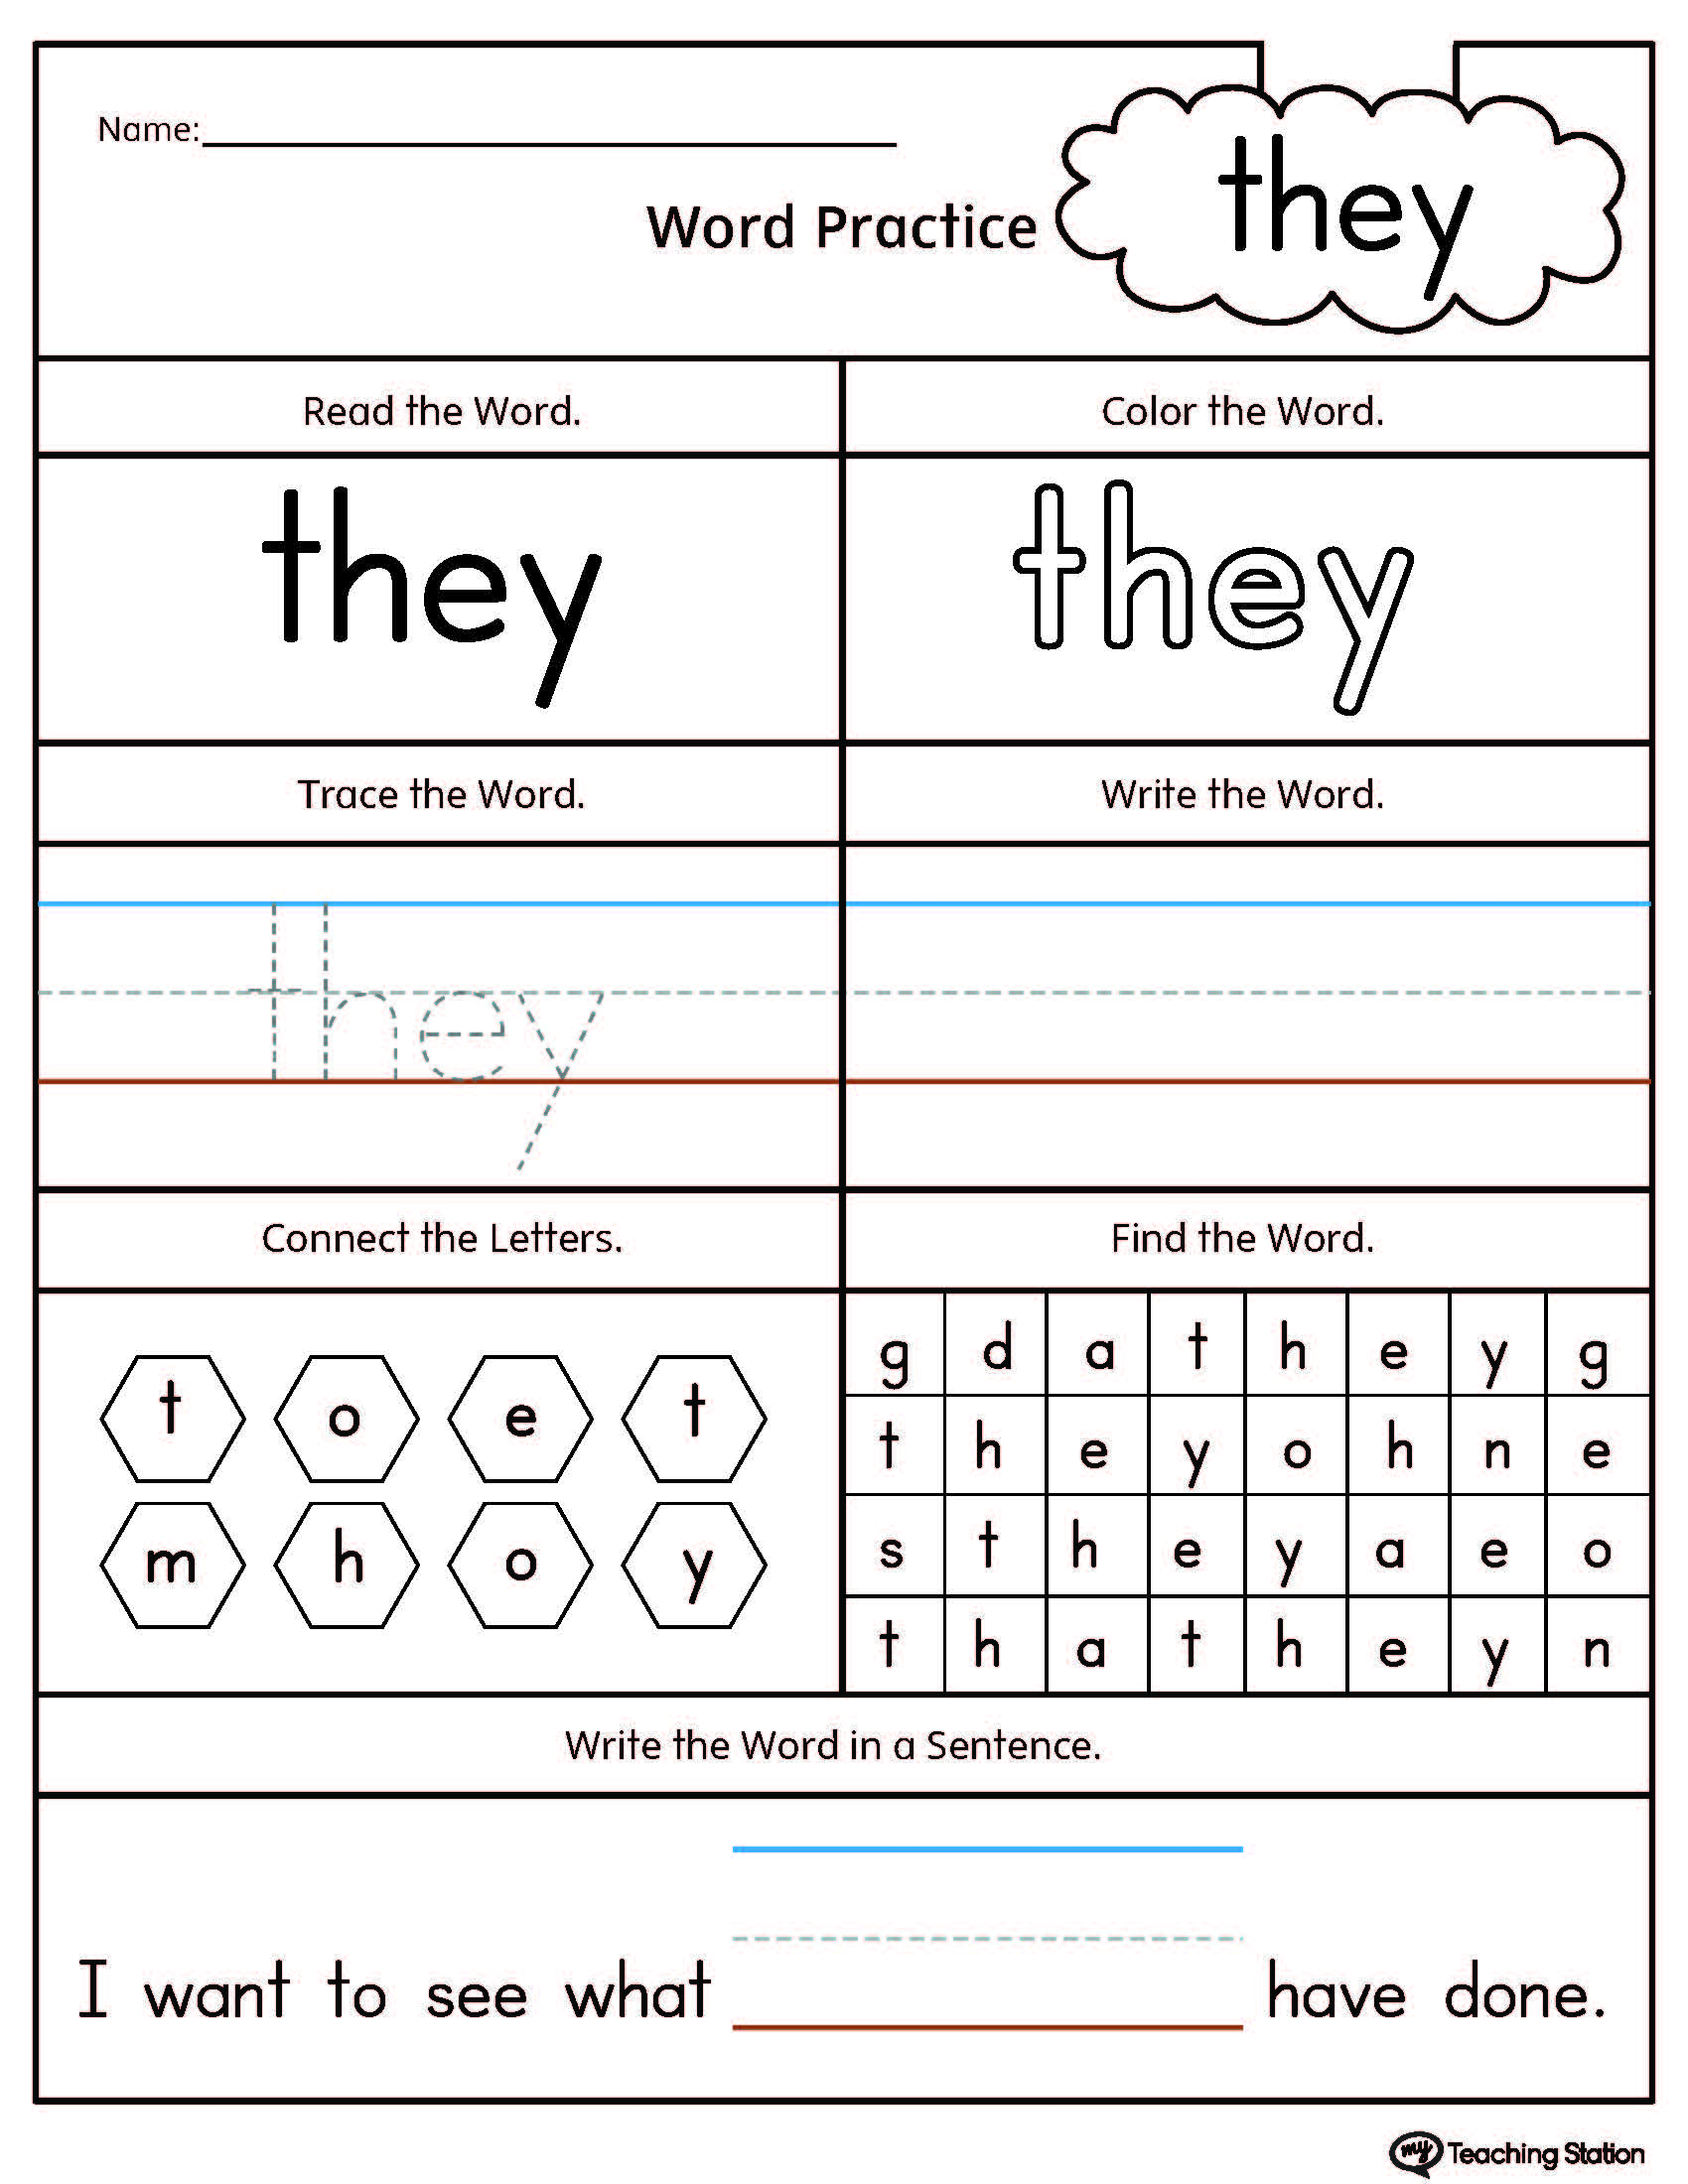 Worksheets Free Printable Sight Word Worksheets kindergarten high frequency words printable worksheets word they worksheet